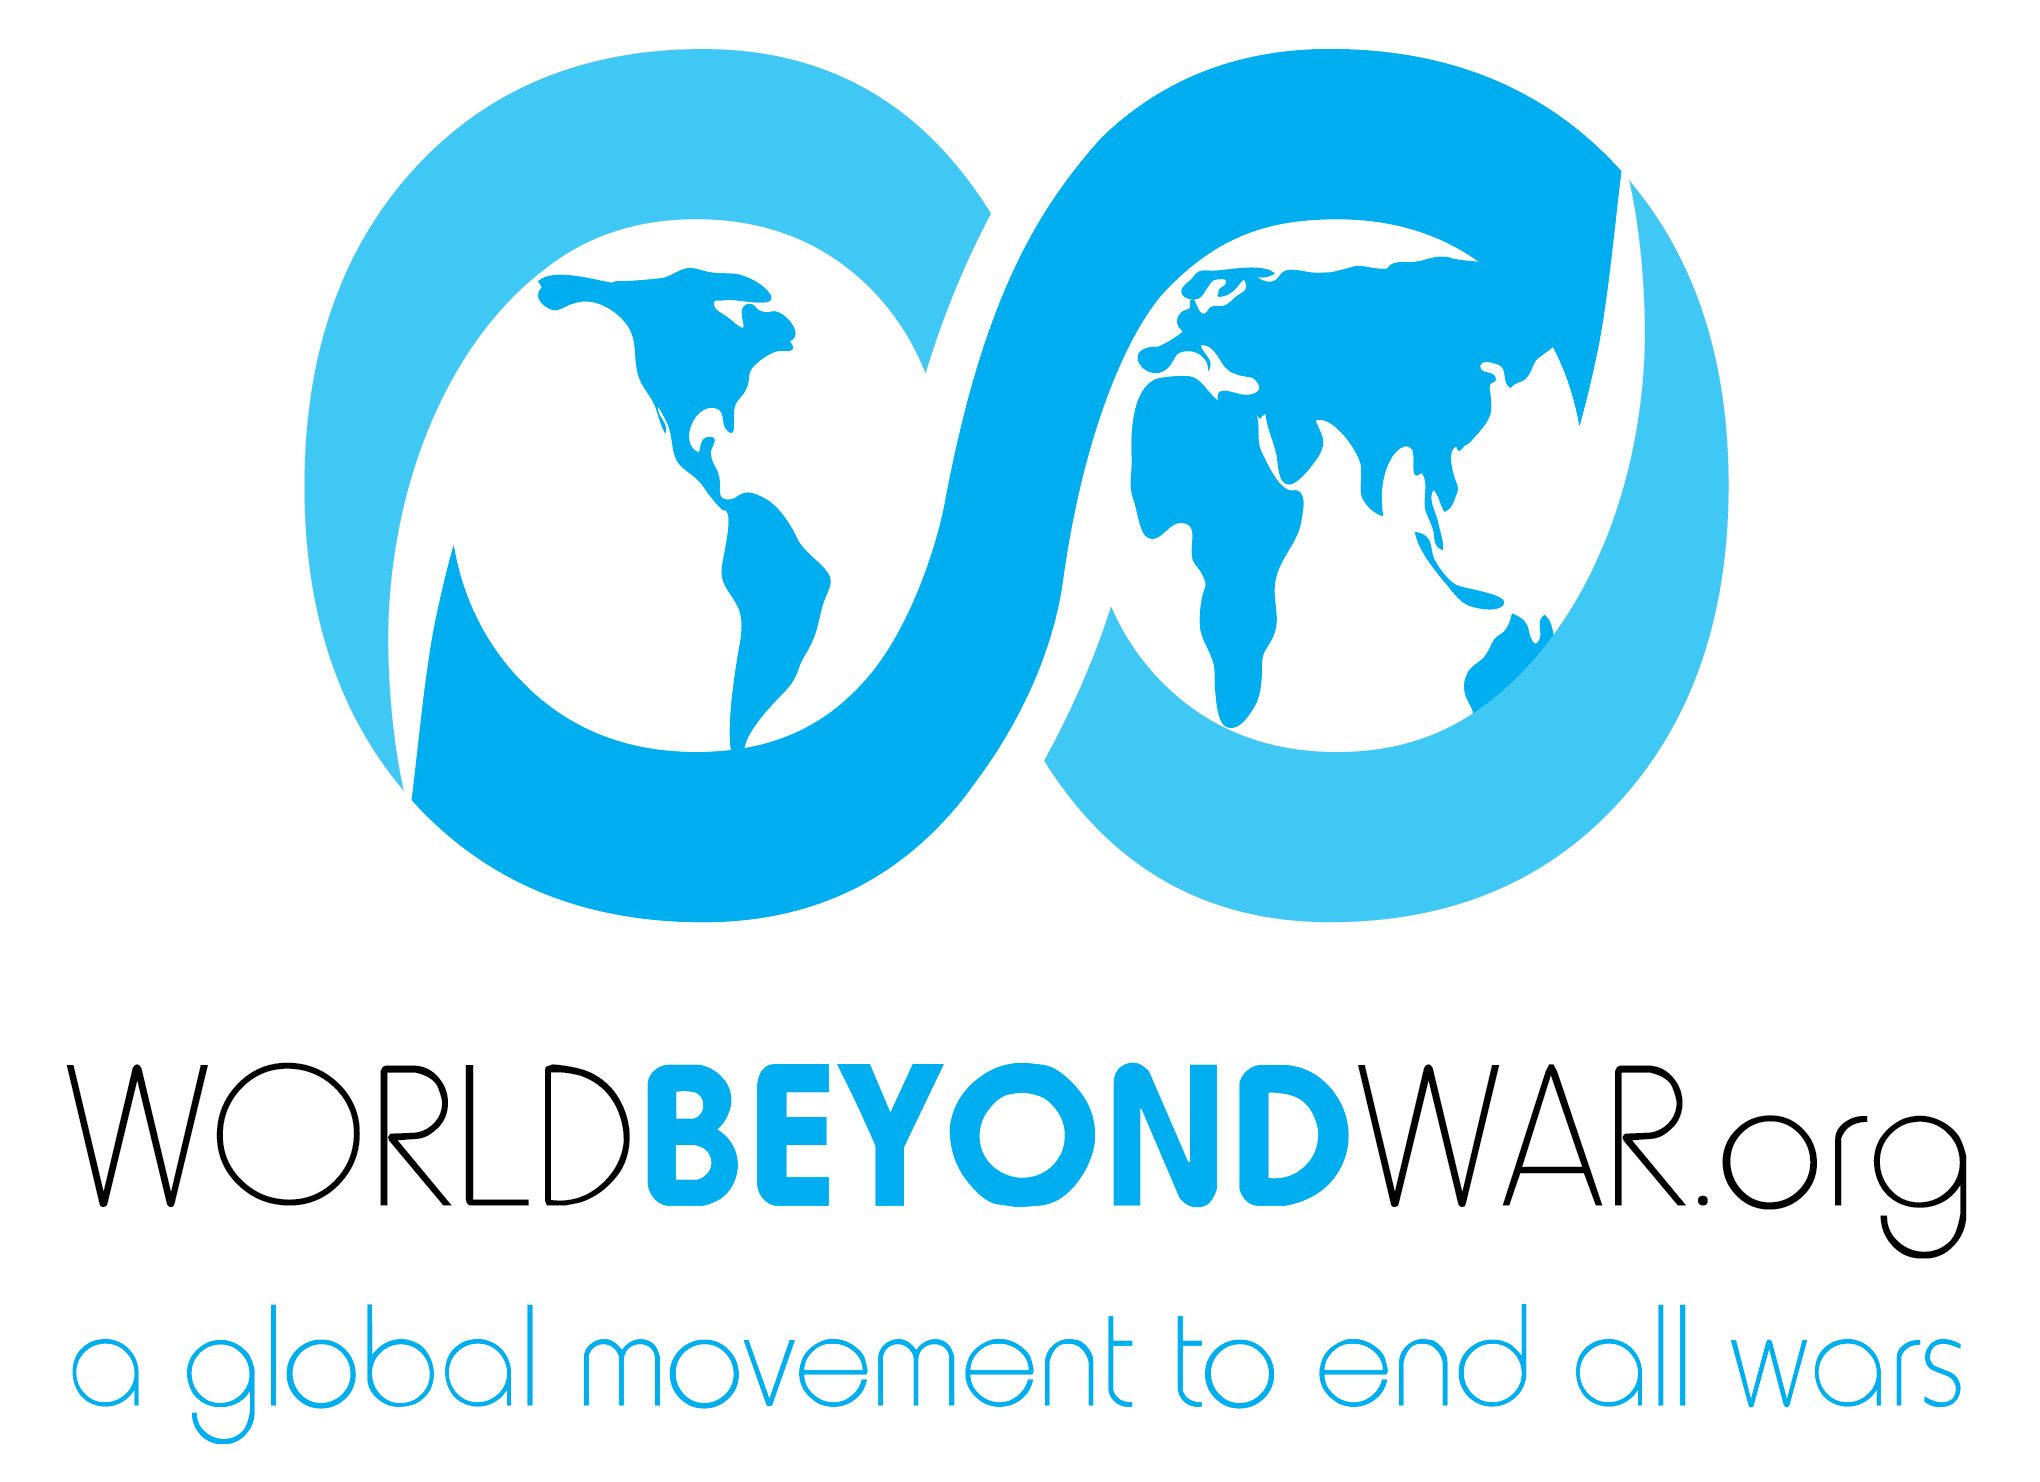 World Beyond War - Wikipedia